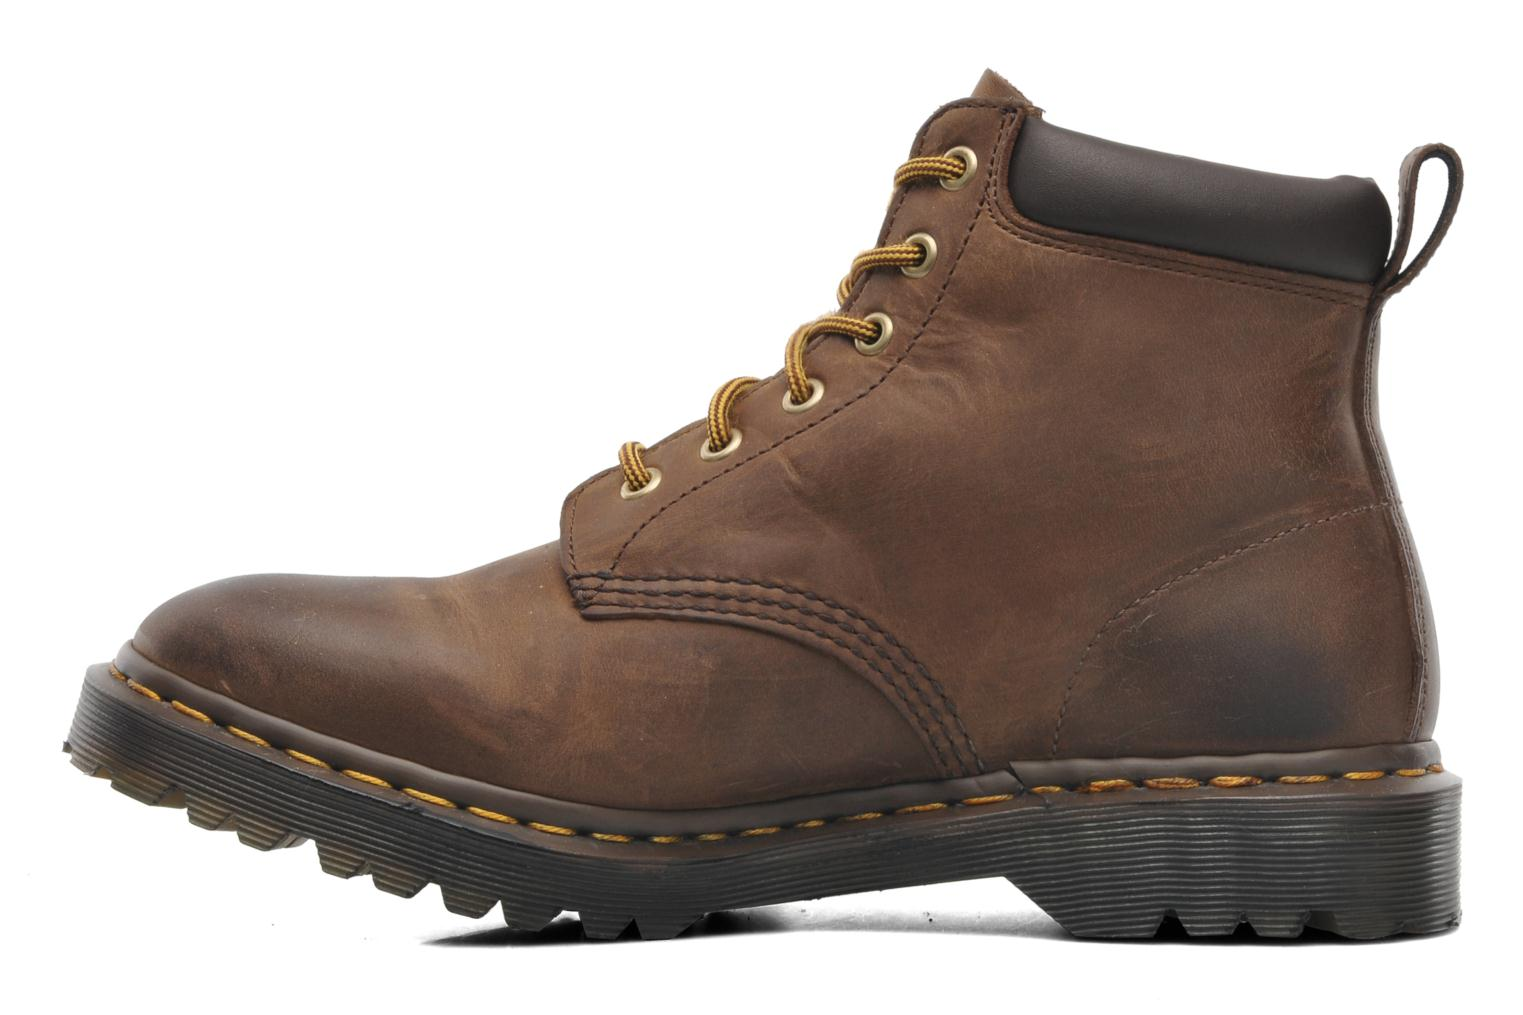 939 m Aztec Rugged Crazyhorse